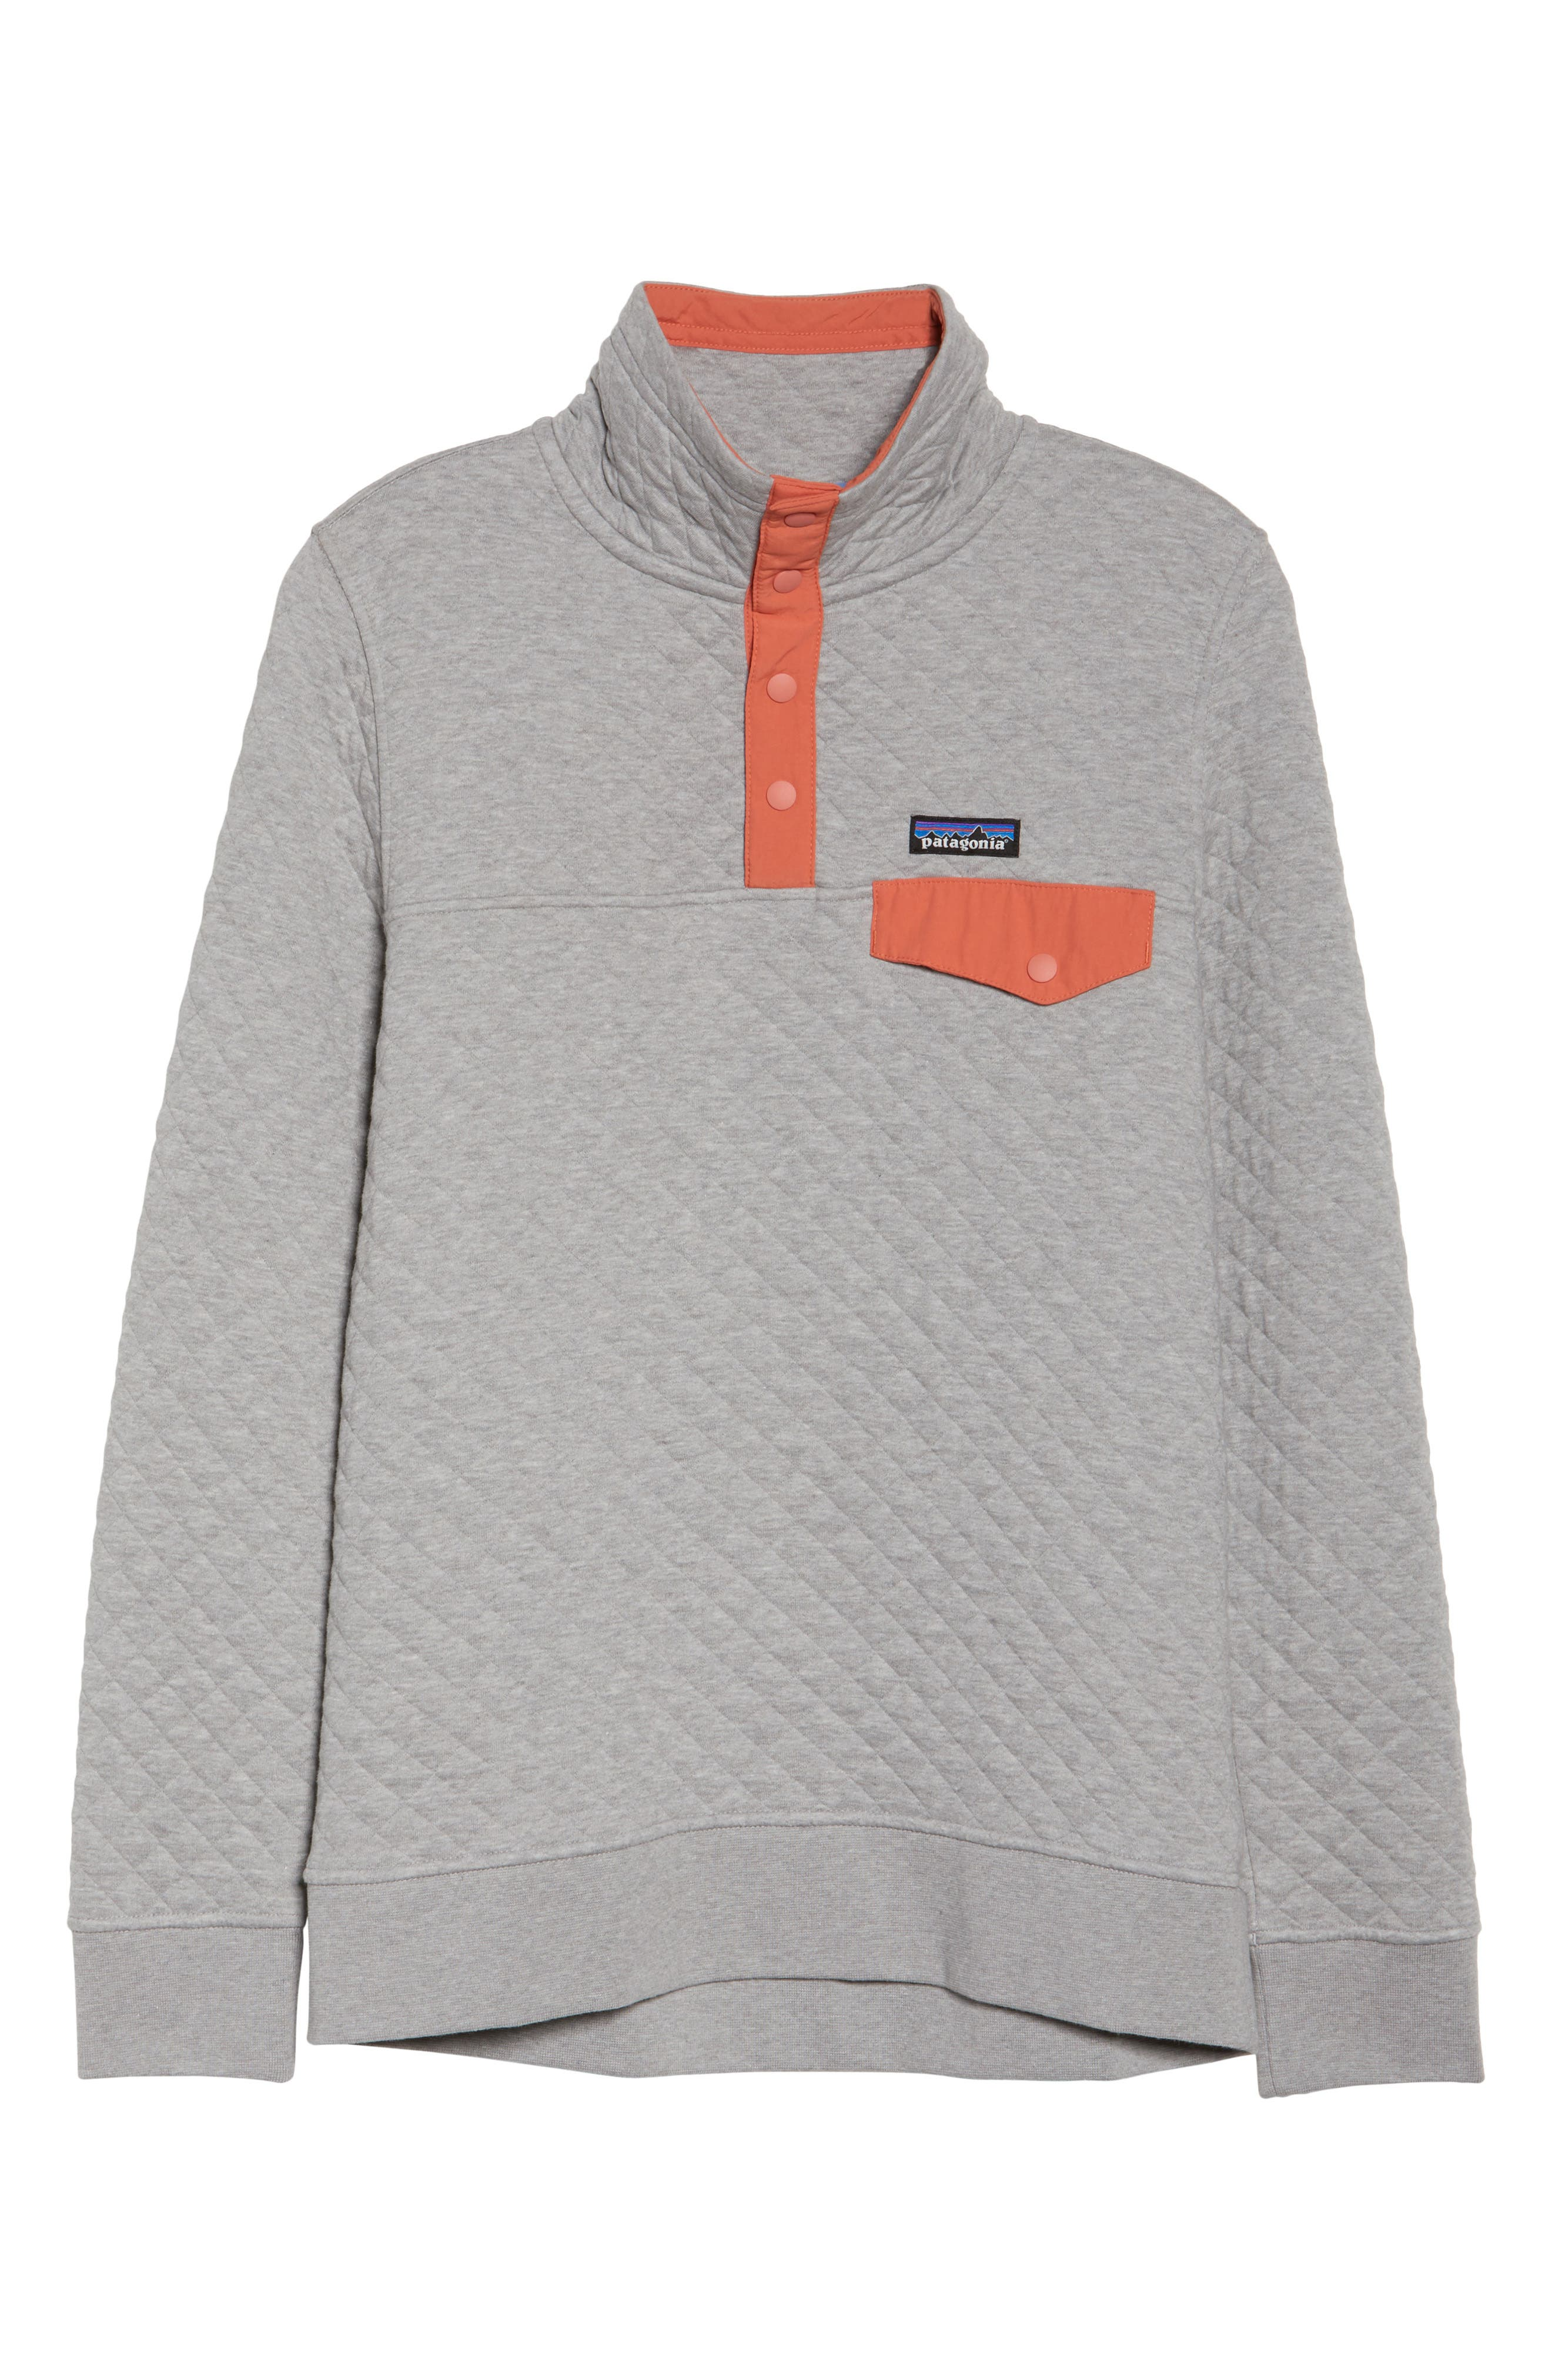 PATAGONIA,                             Snap-T<sup>®</sup> Quilted Pullover,                             Alternate thumbnail 7, color,                             023